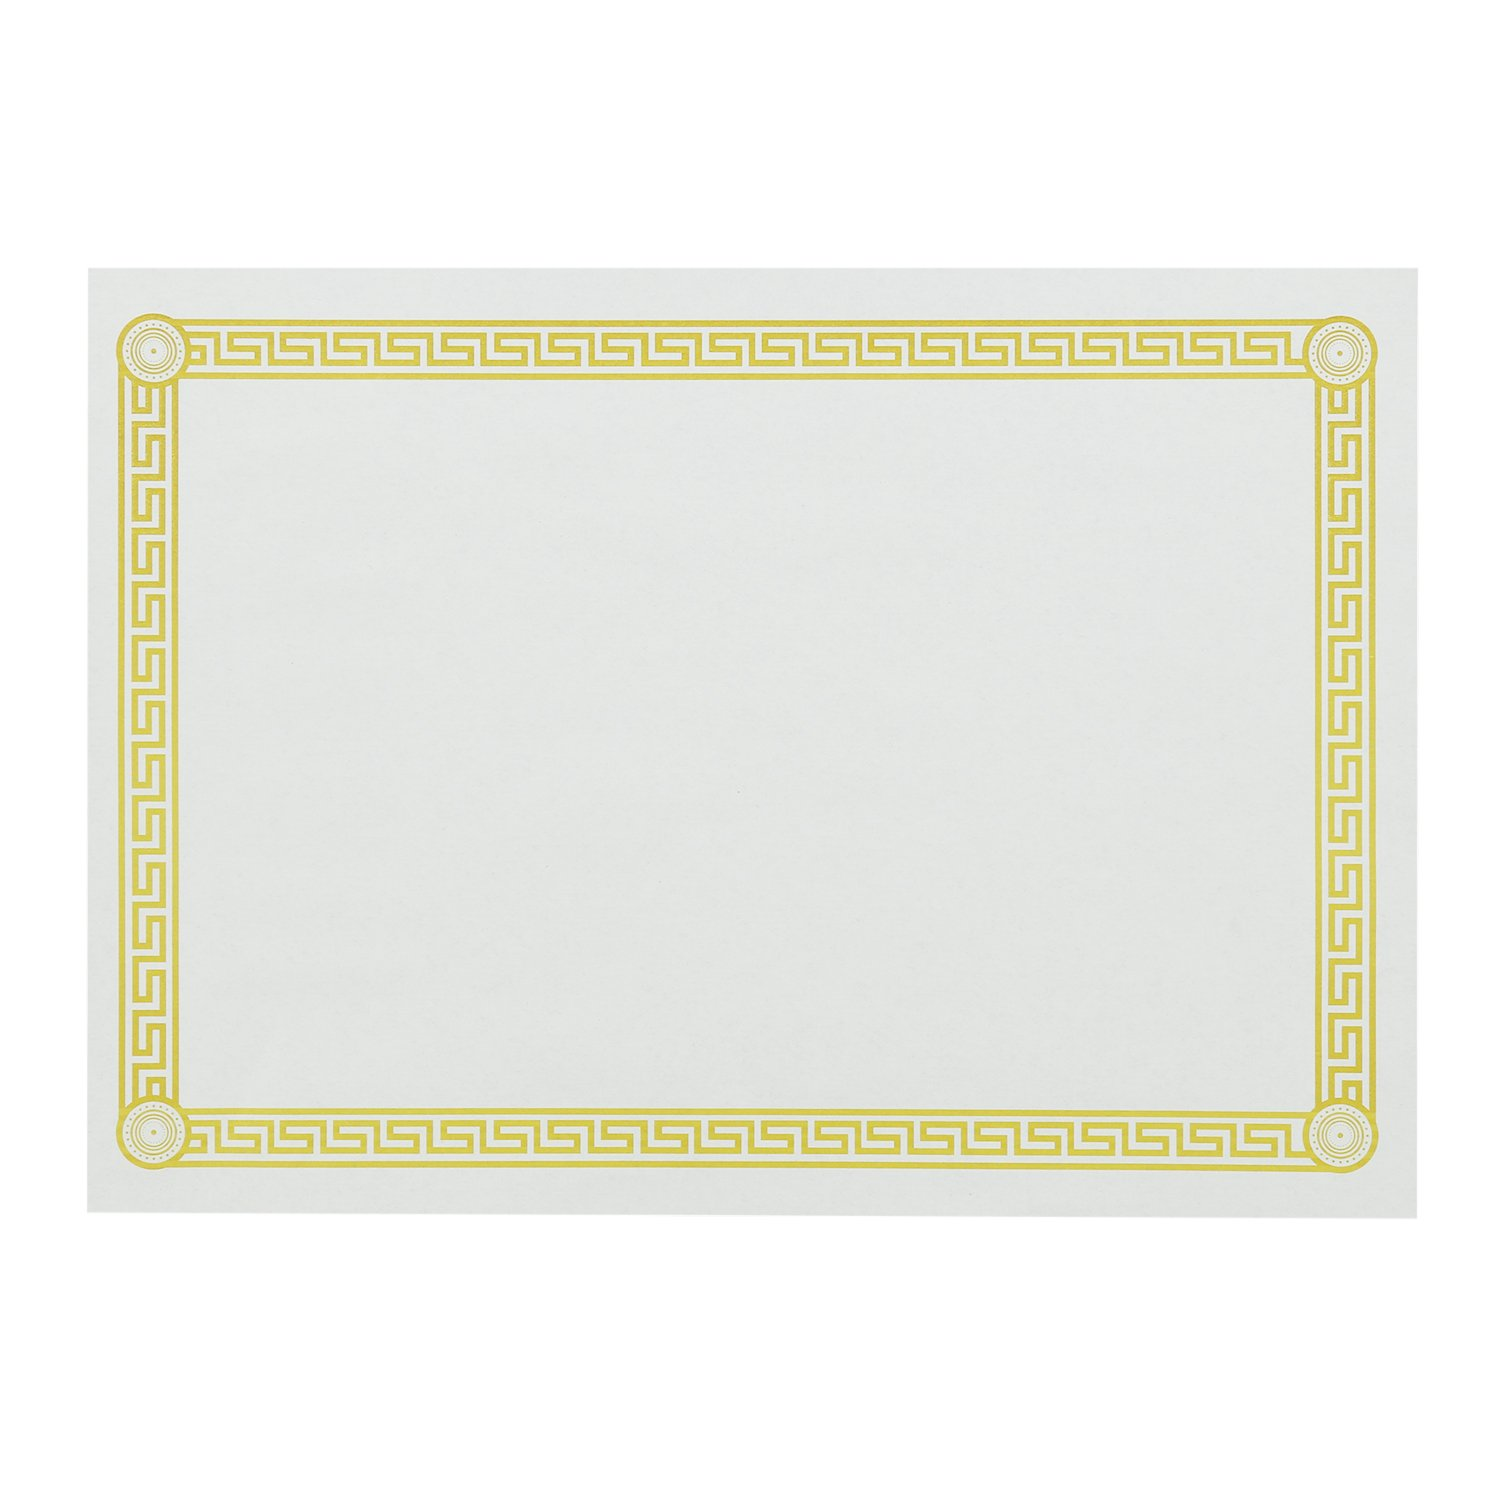 Royal Greek Key Design Disposable Placemats, Package of 1000